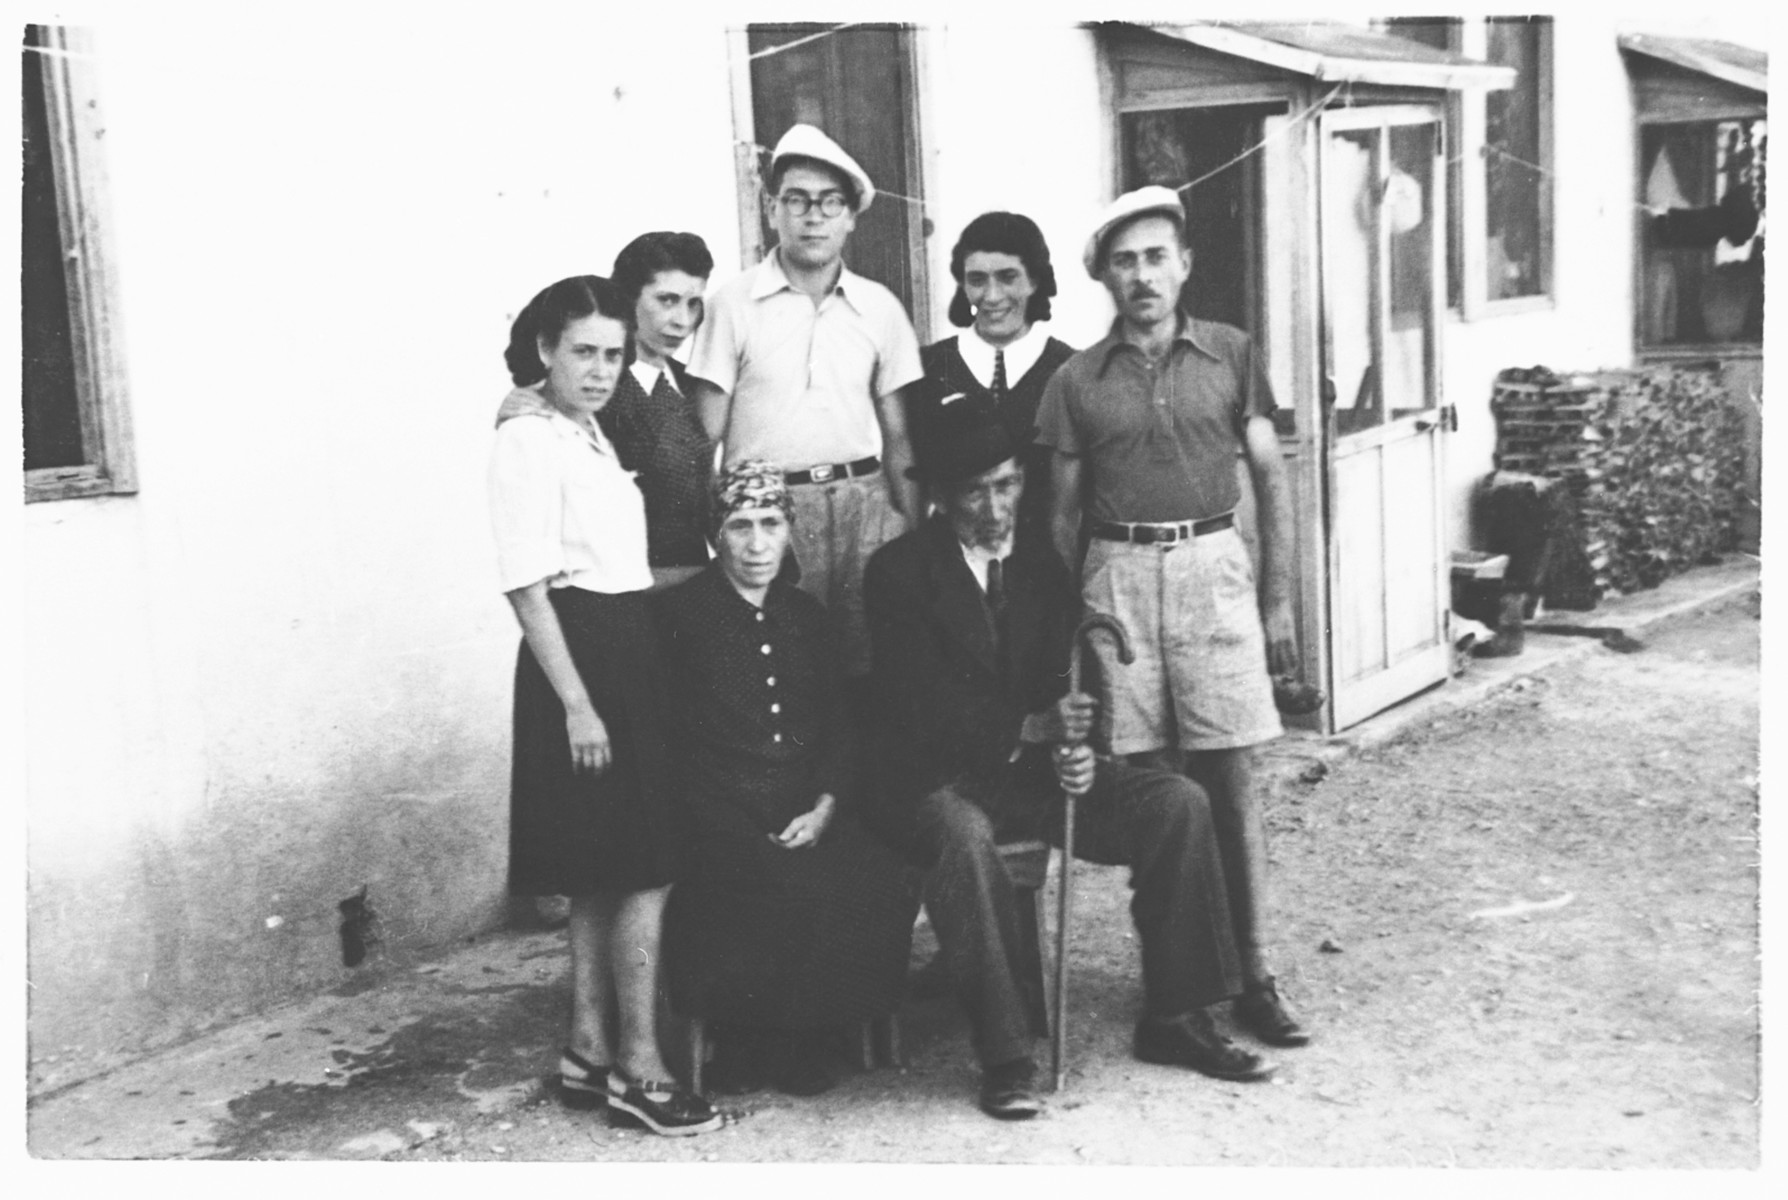 Group portrait of the Ermanno Stern family, internees in the Ferramonti camp.  This photograph was taken during a visit by Rabbi Riccardo Pacifici.